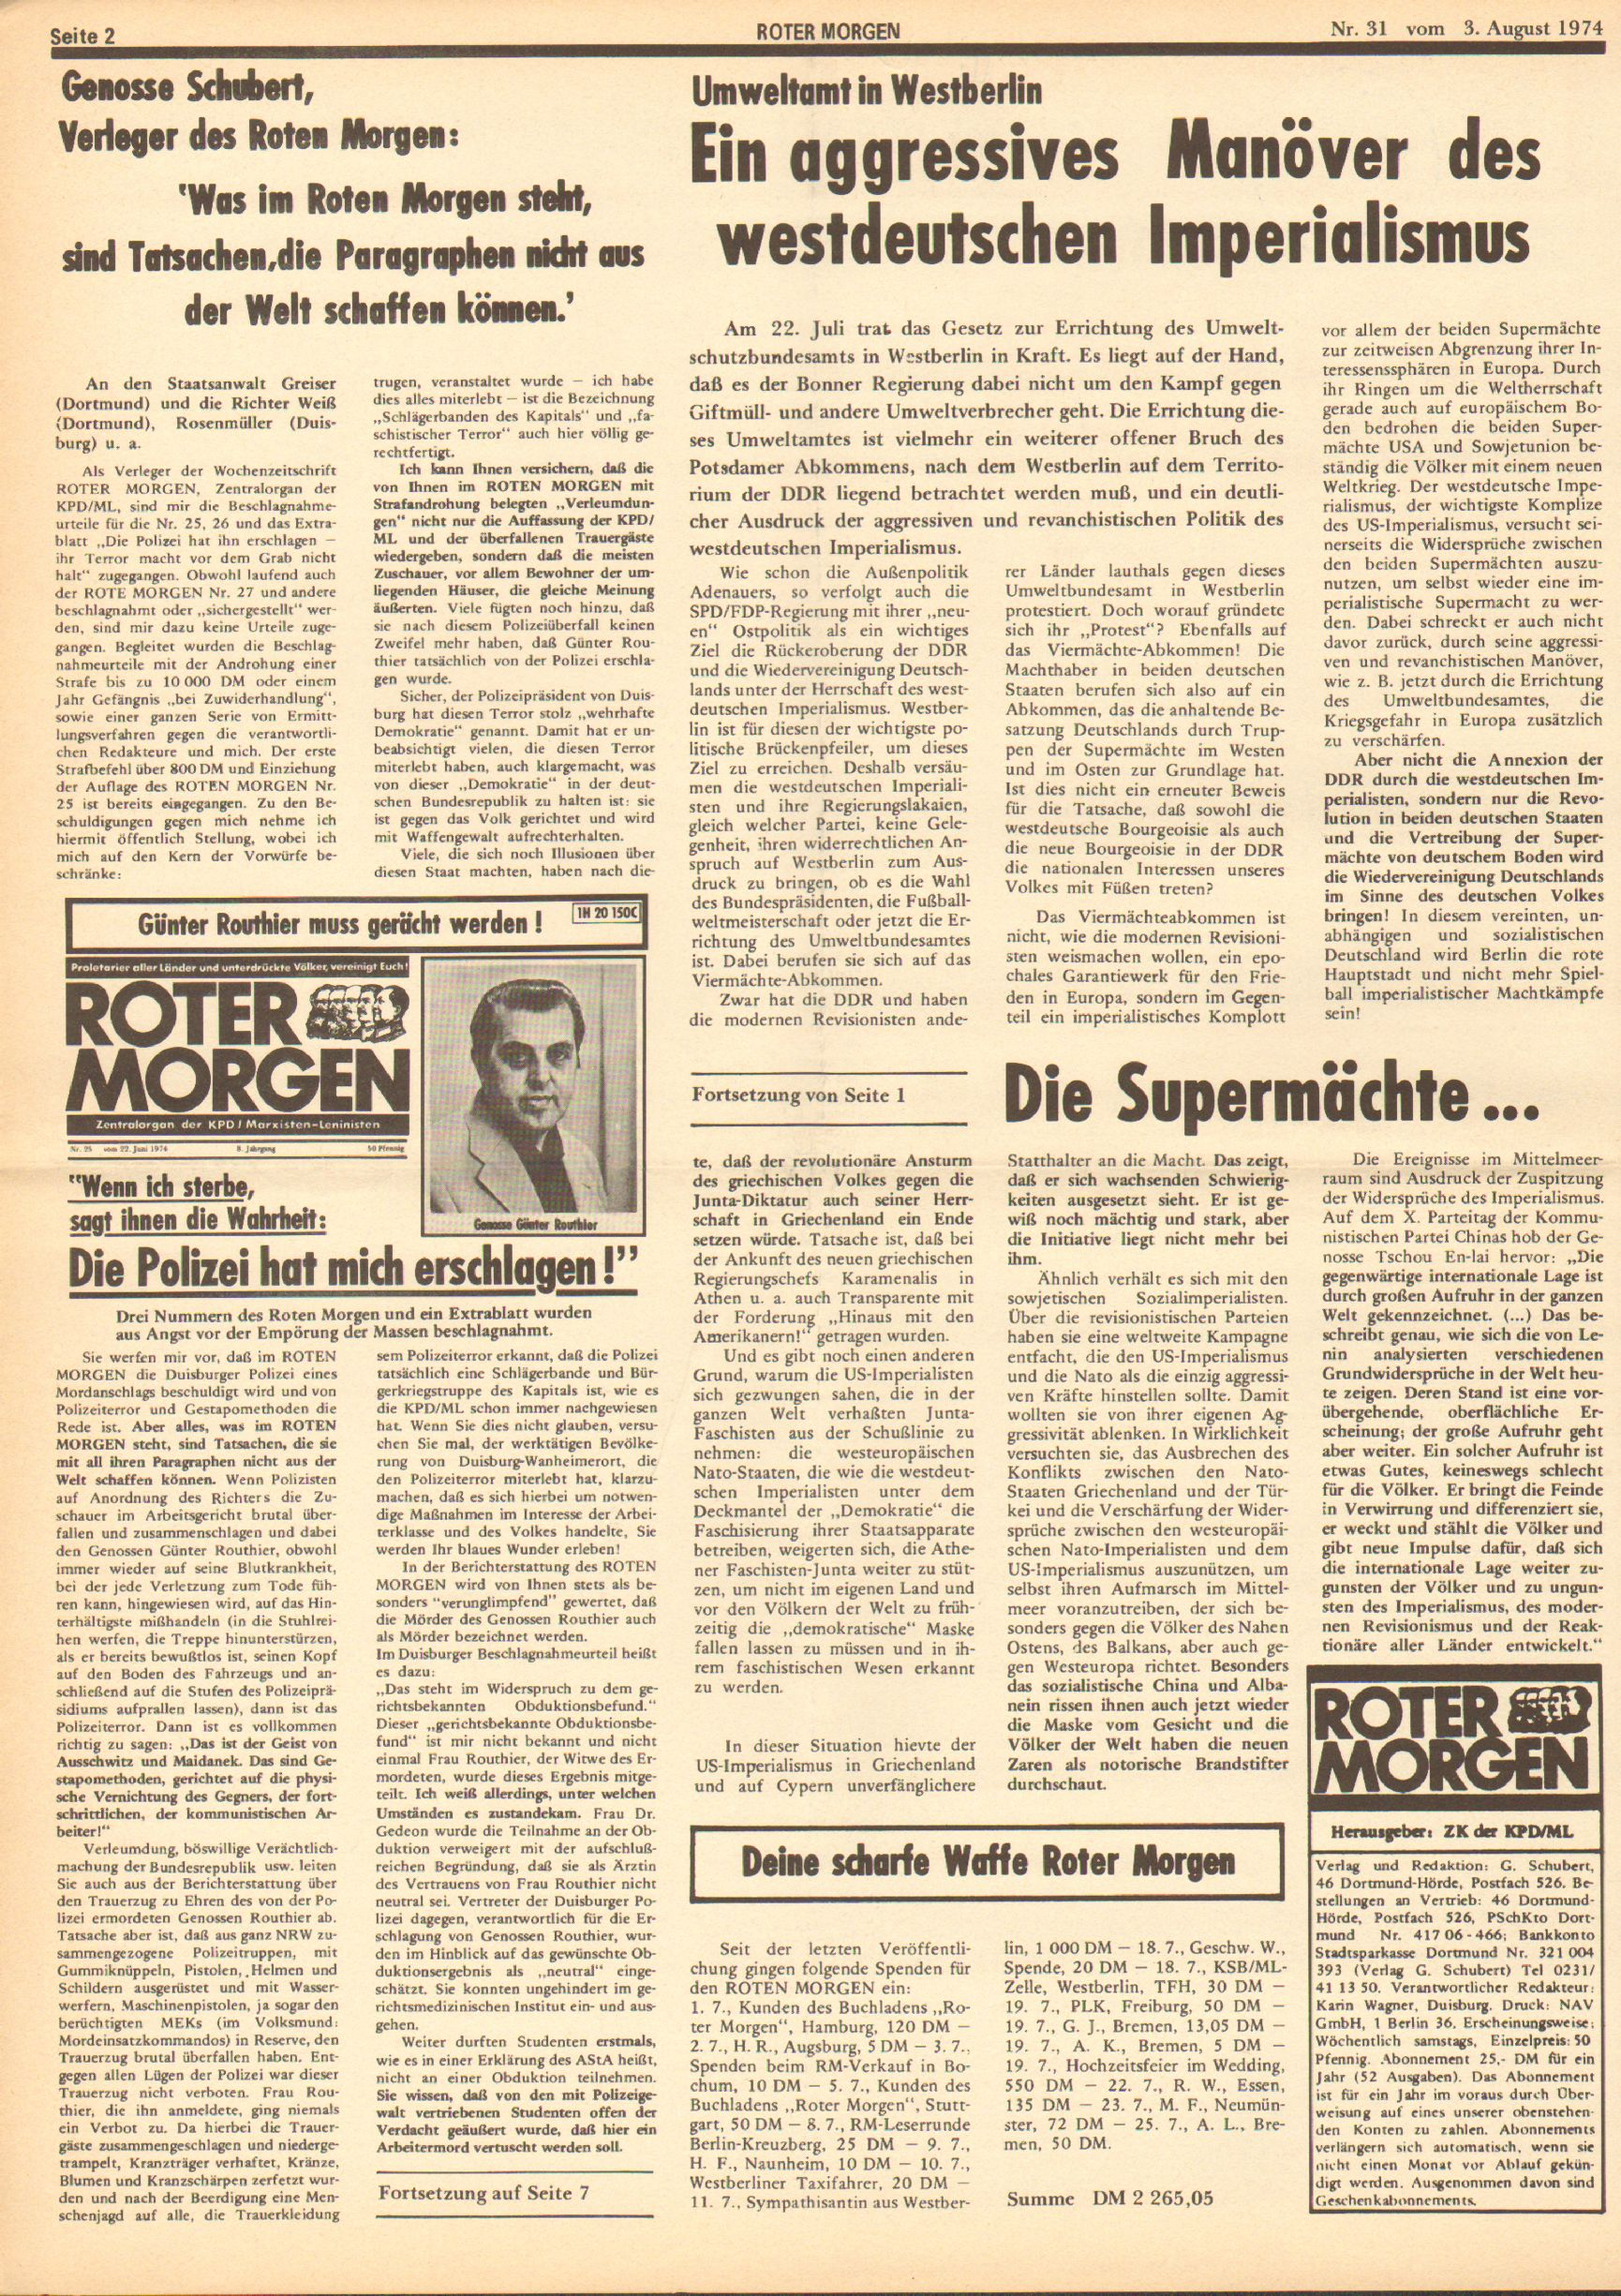 Roter Morgen, 8. Jg., 3. August 1974, Nr. 31, Seite 2